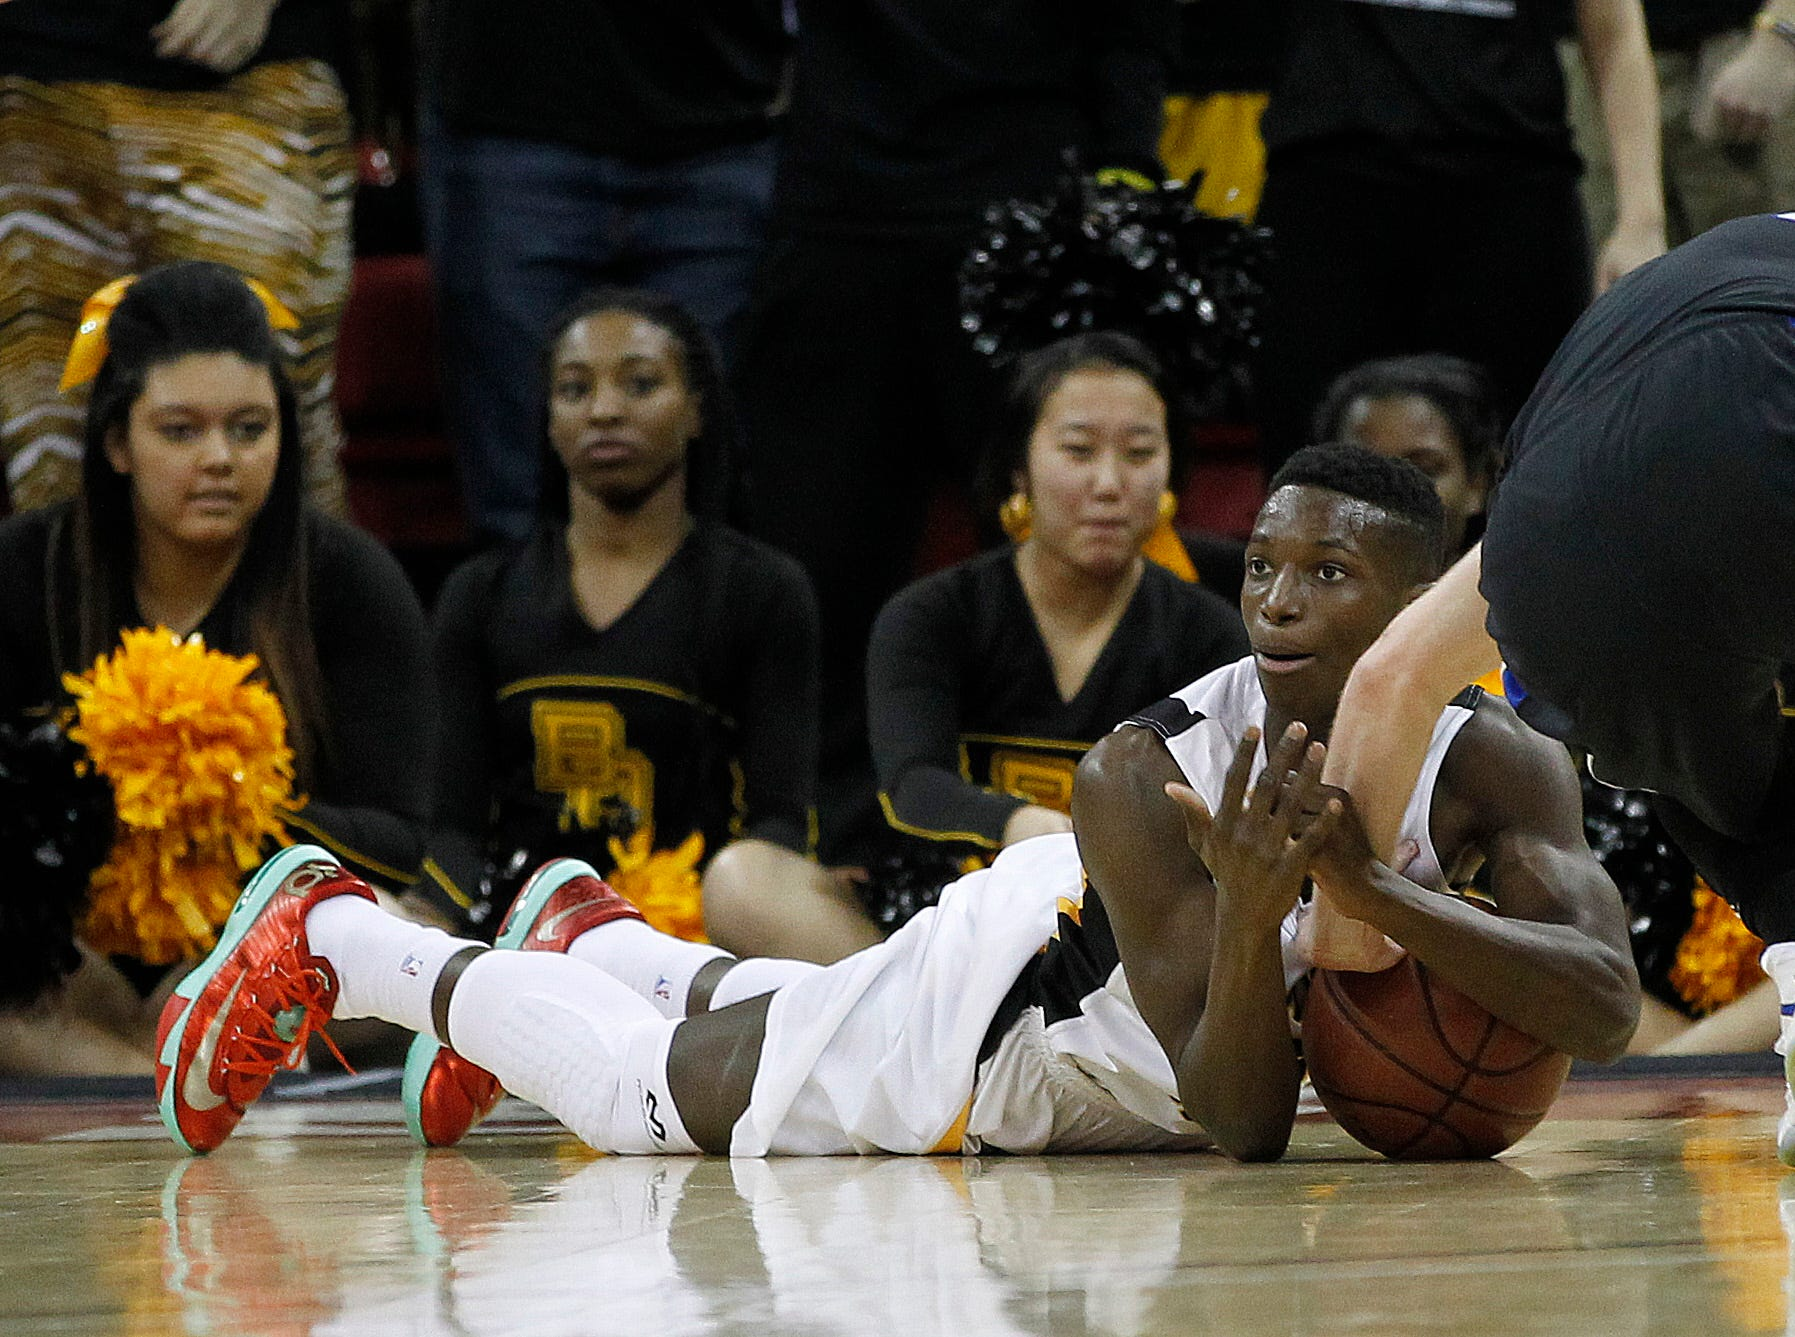 Brown Deer's Lewrenzo Byers goes for a loose ball against the Lodi Blue Devils' in the second period of the 2014 Division 3 WIAA Boys Basketball Tournament Championships being held at the Kohl Center in Madison.